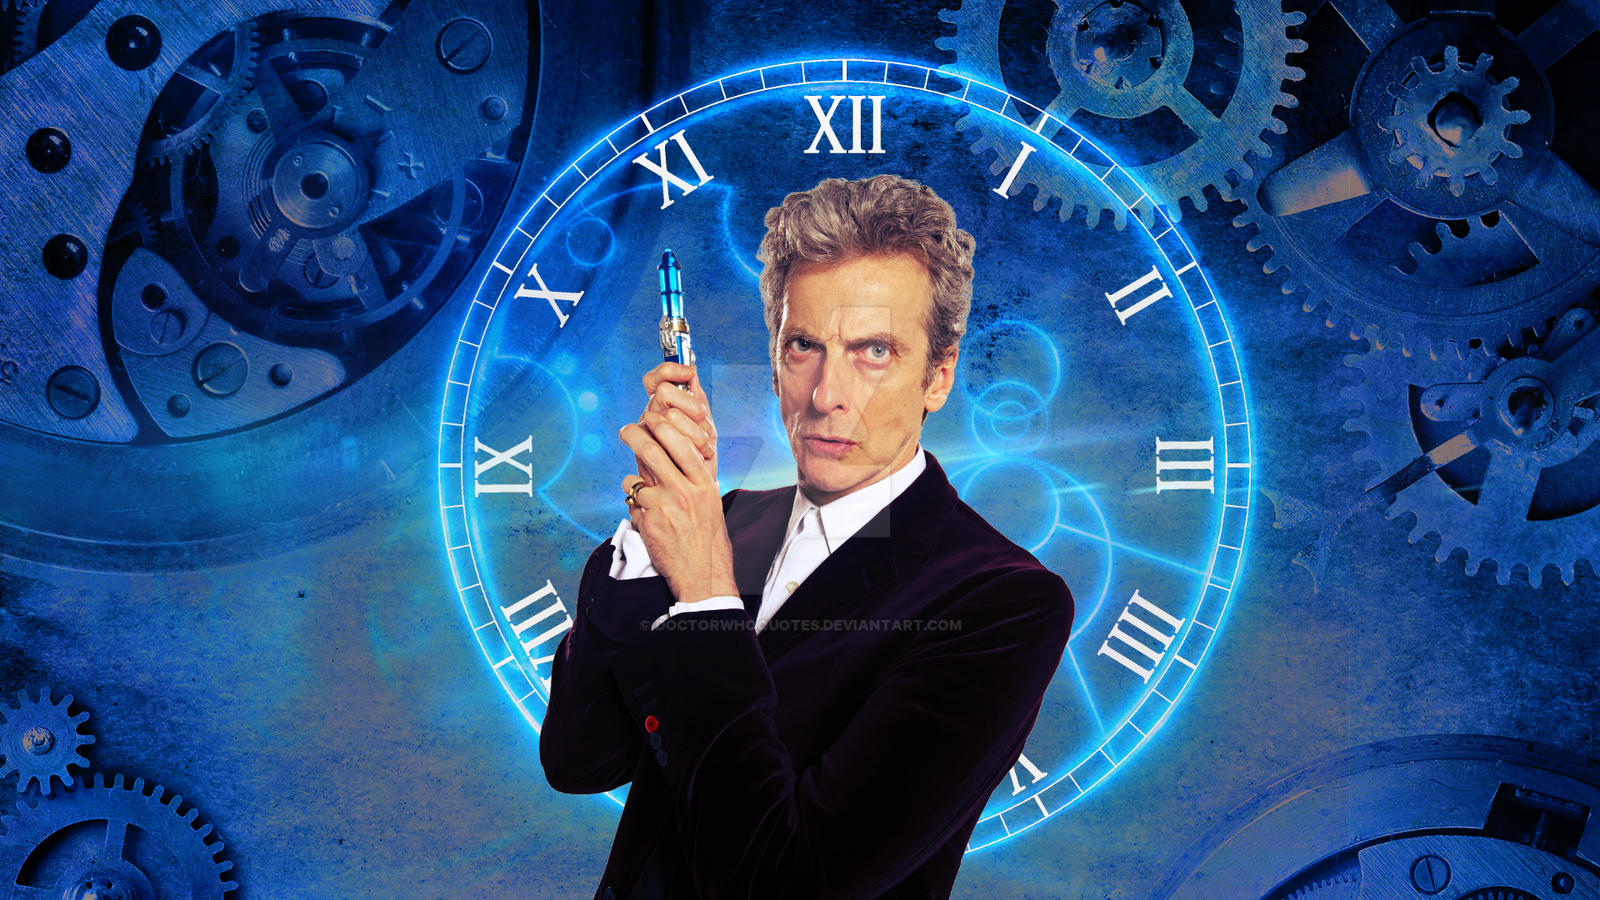 Peter Capaldi Gears By DOCTORWHOQUOTES On DeviantArt